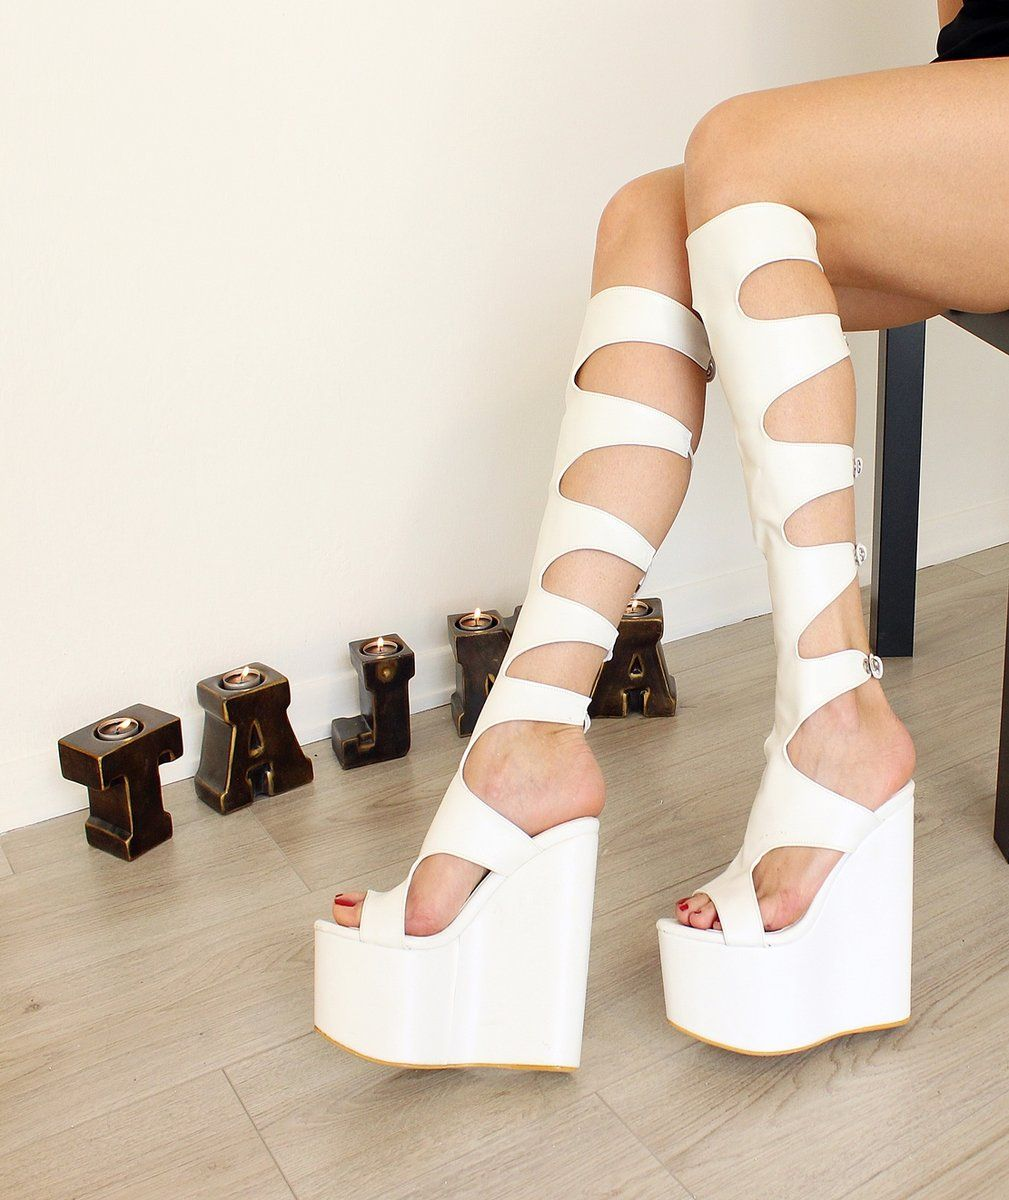 163b52d6596f White Gladiator Wedge Boots High Heel Platform Shoes High Quality,  Fashionable   Comfortable! This